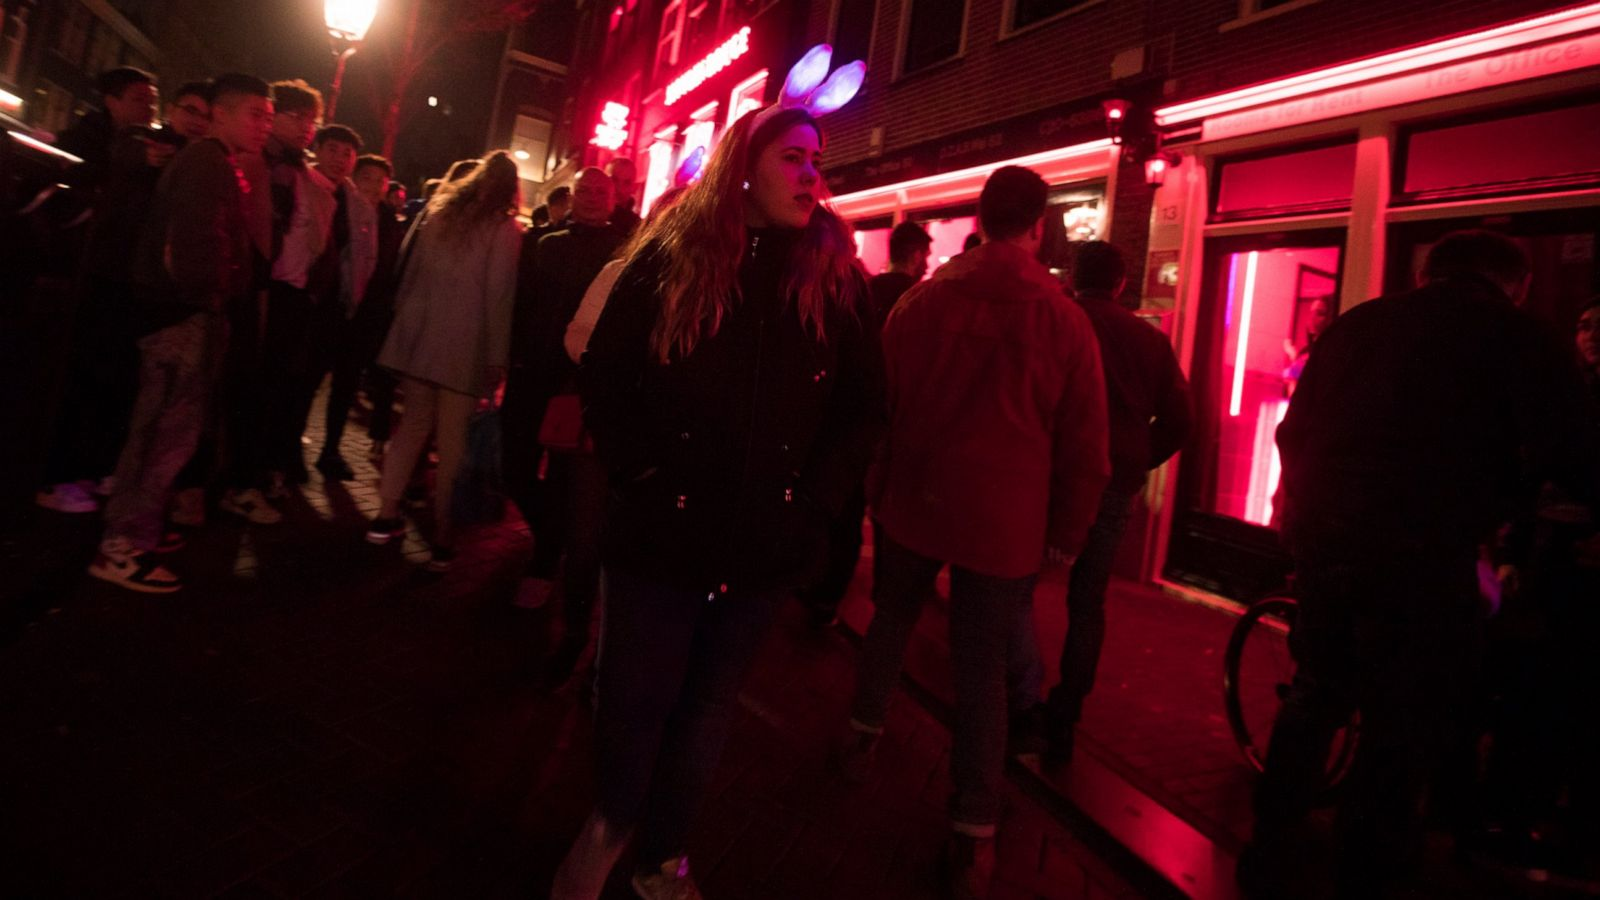 Amsterdam prostitutes red light district Amsterdam Red